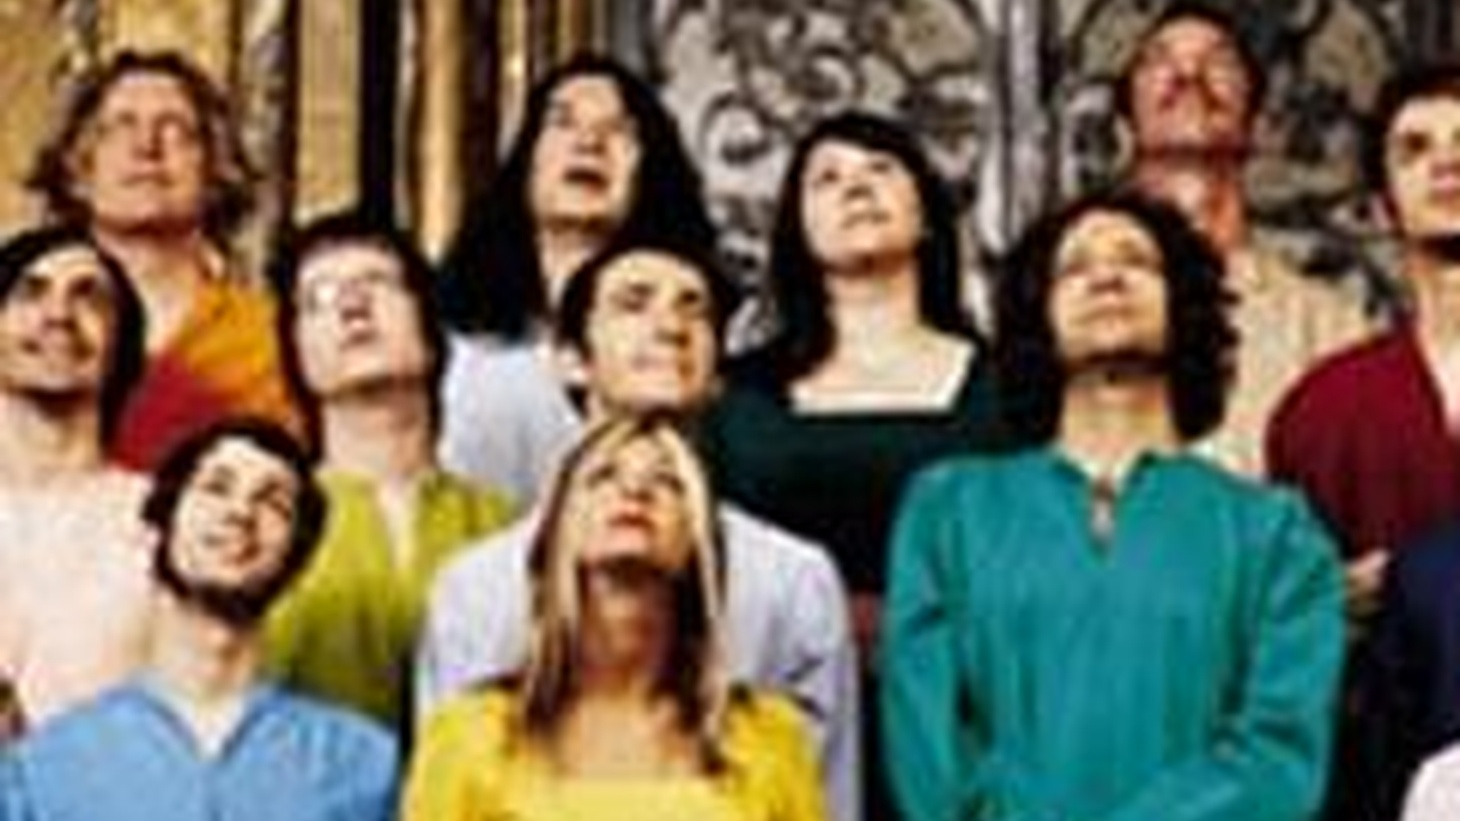 Dallas based symphonic choir, The Polyphonic Spree, bring joy to Morning Becomes Eclectic at 11:15am. Click Here to Watch!